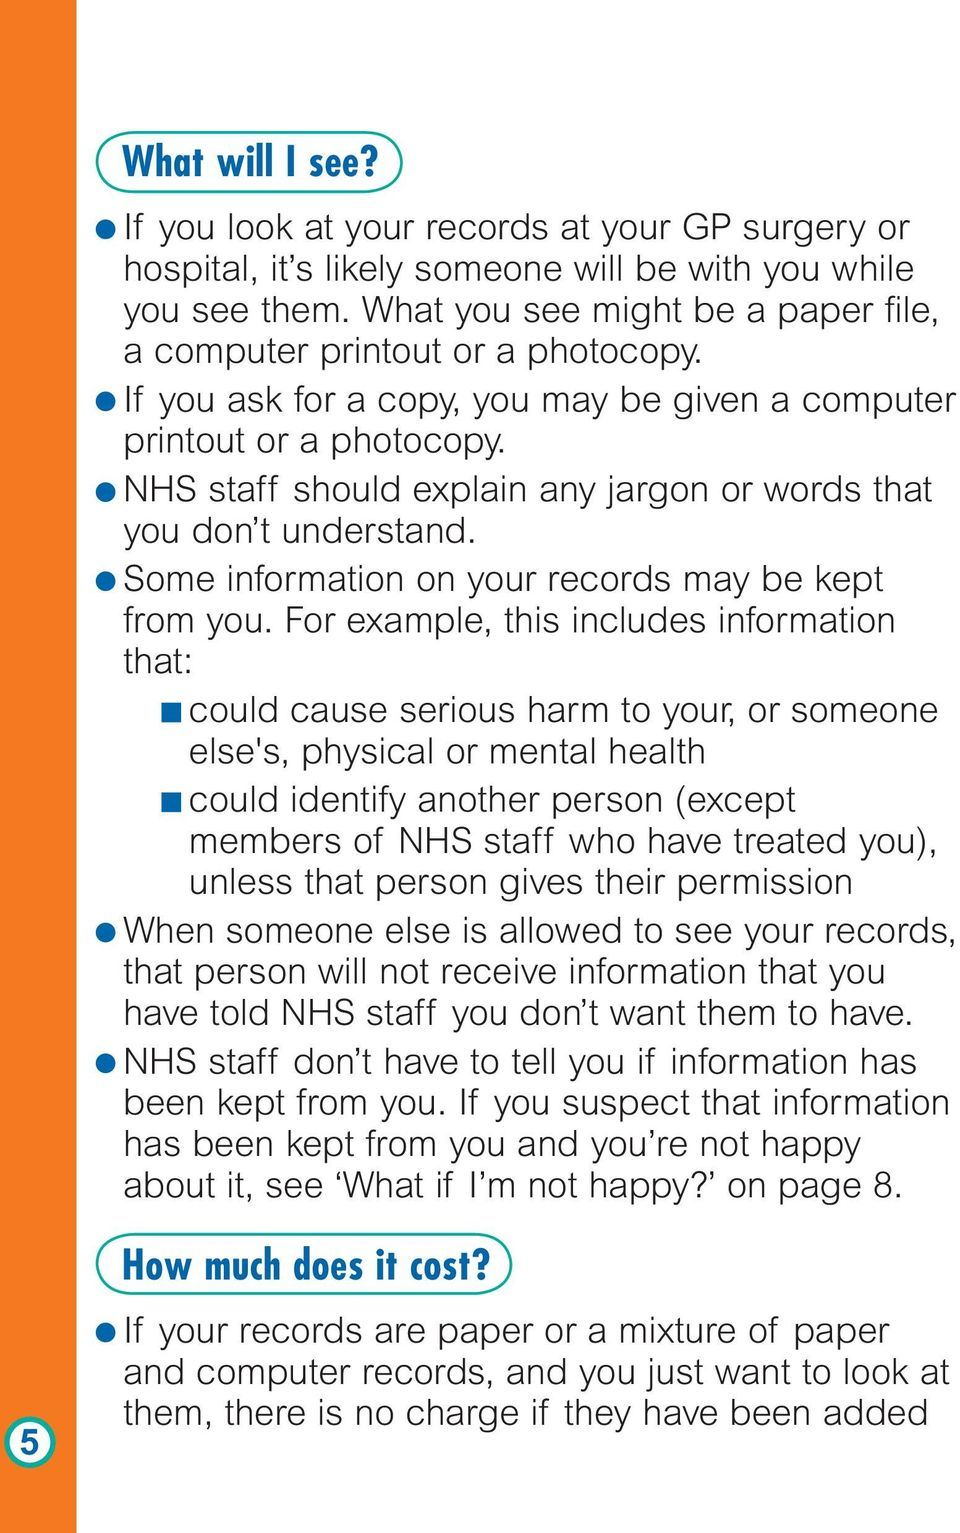 NHS staff should explain any jargon or words that you don t understand. Some information on your records may be kept from you.